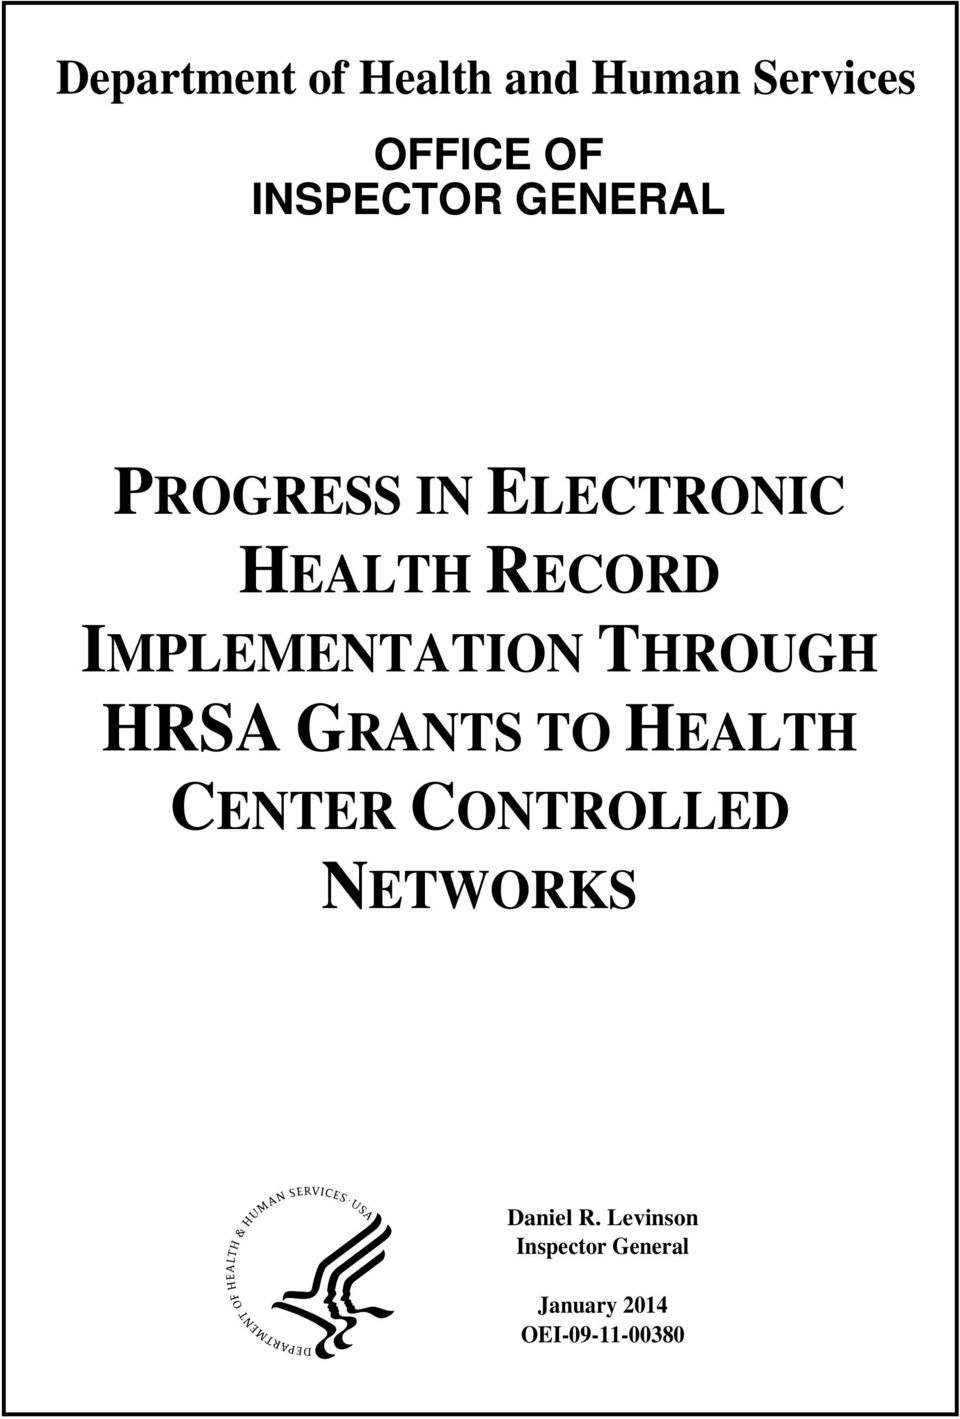 THROUGH HRSA GRANTS TO HEALTH CENTER CONTROLLED NETWORKS